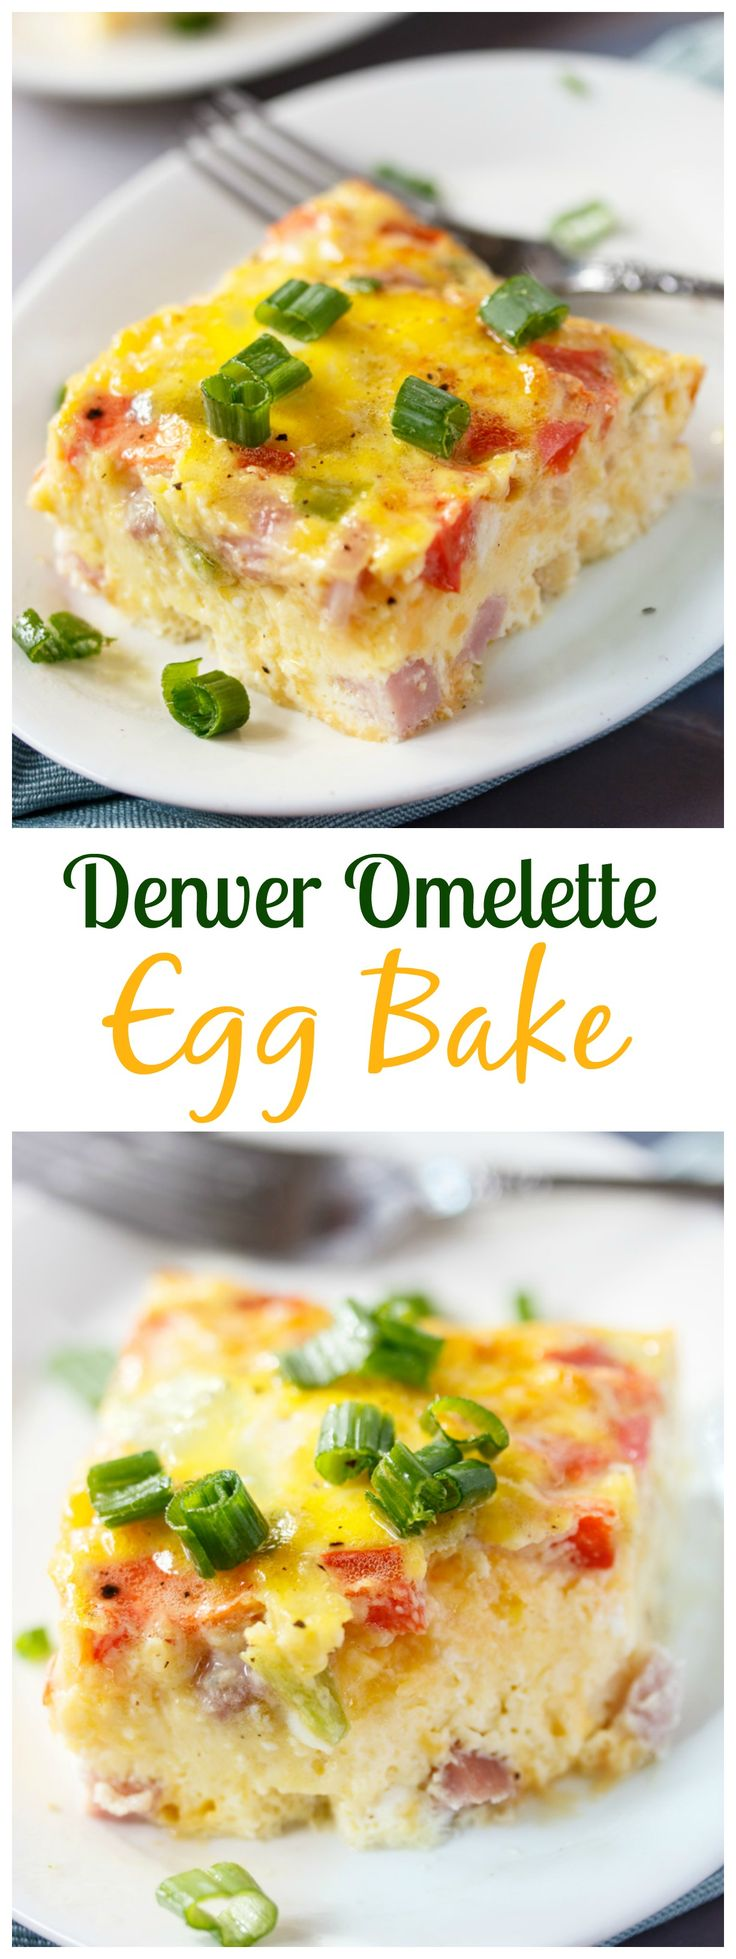 This Denver Omelette Egg Bake is loaded with ham, bell peppers, onions and cheese mixed with fluffy eggs and ready in 30 minutes from start to finish!